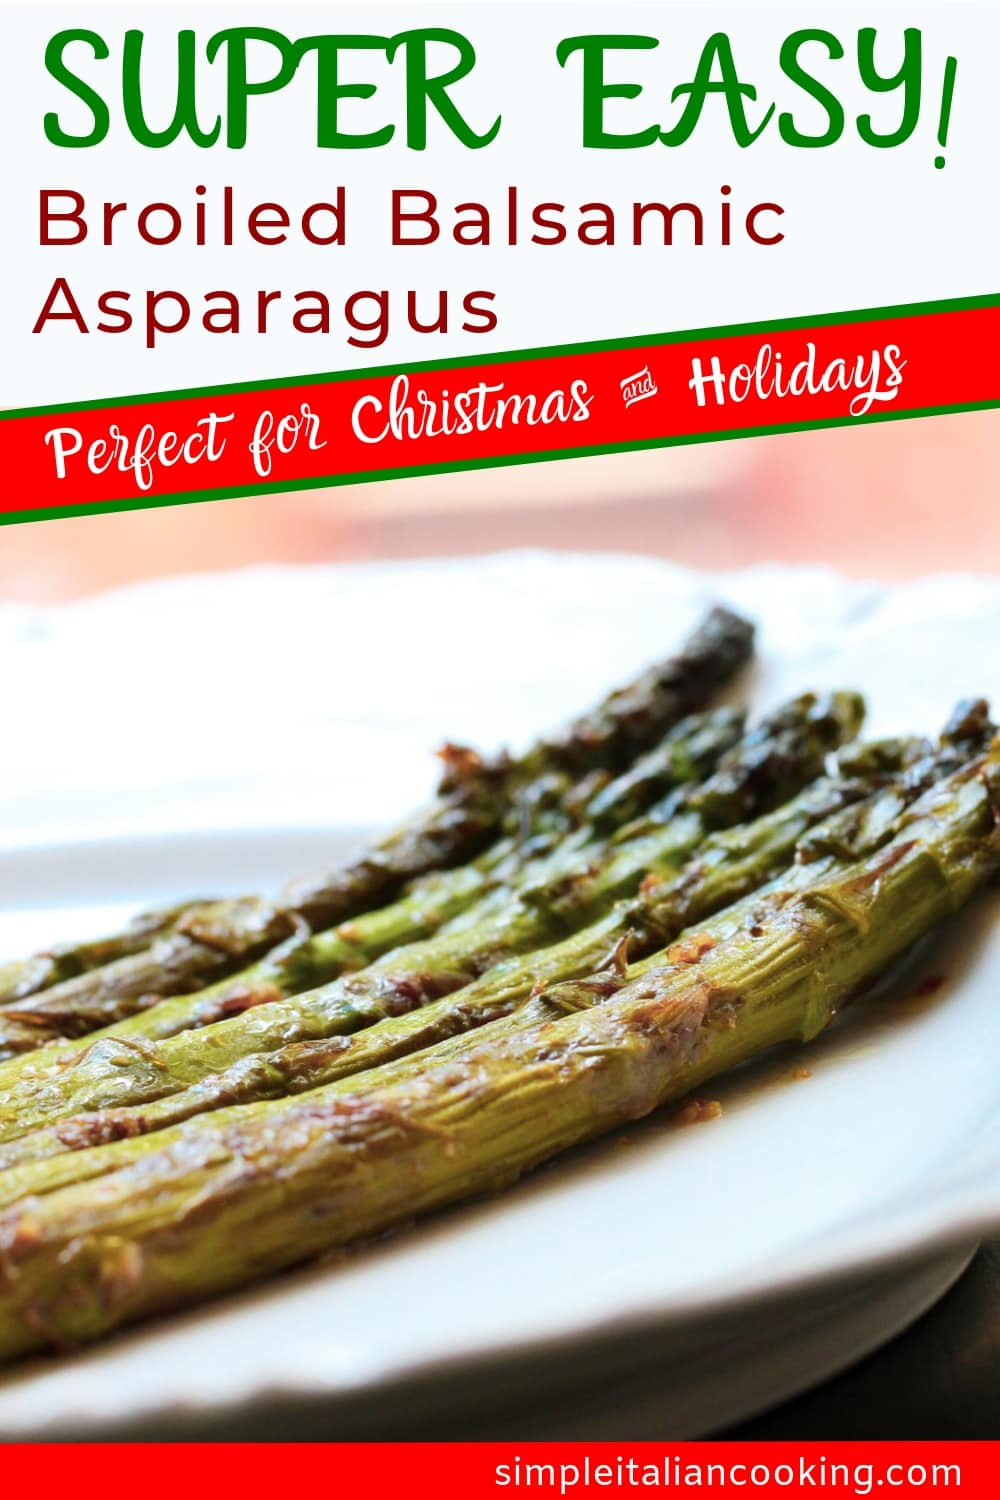 Simple Italian Recipe for Braised Asparagus with Balsamic Vinegar